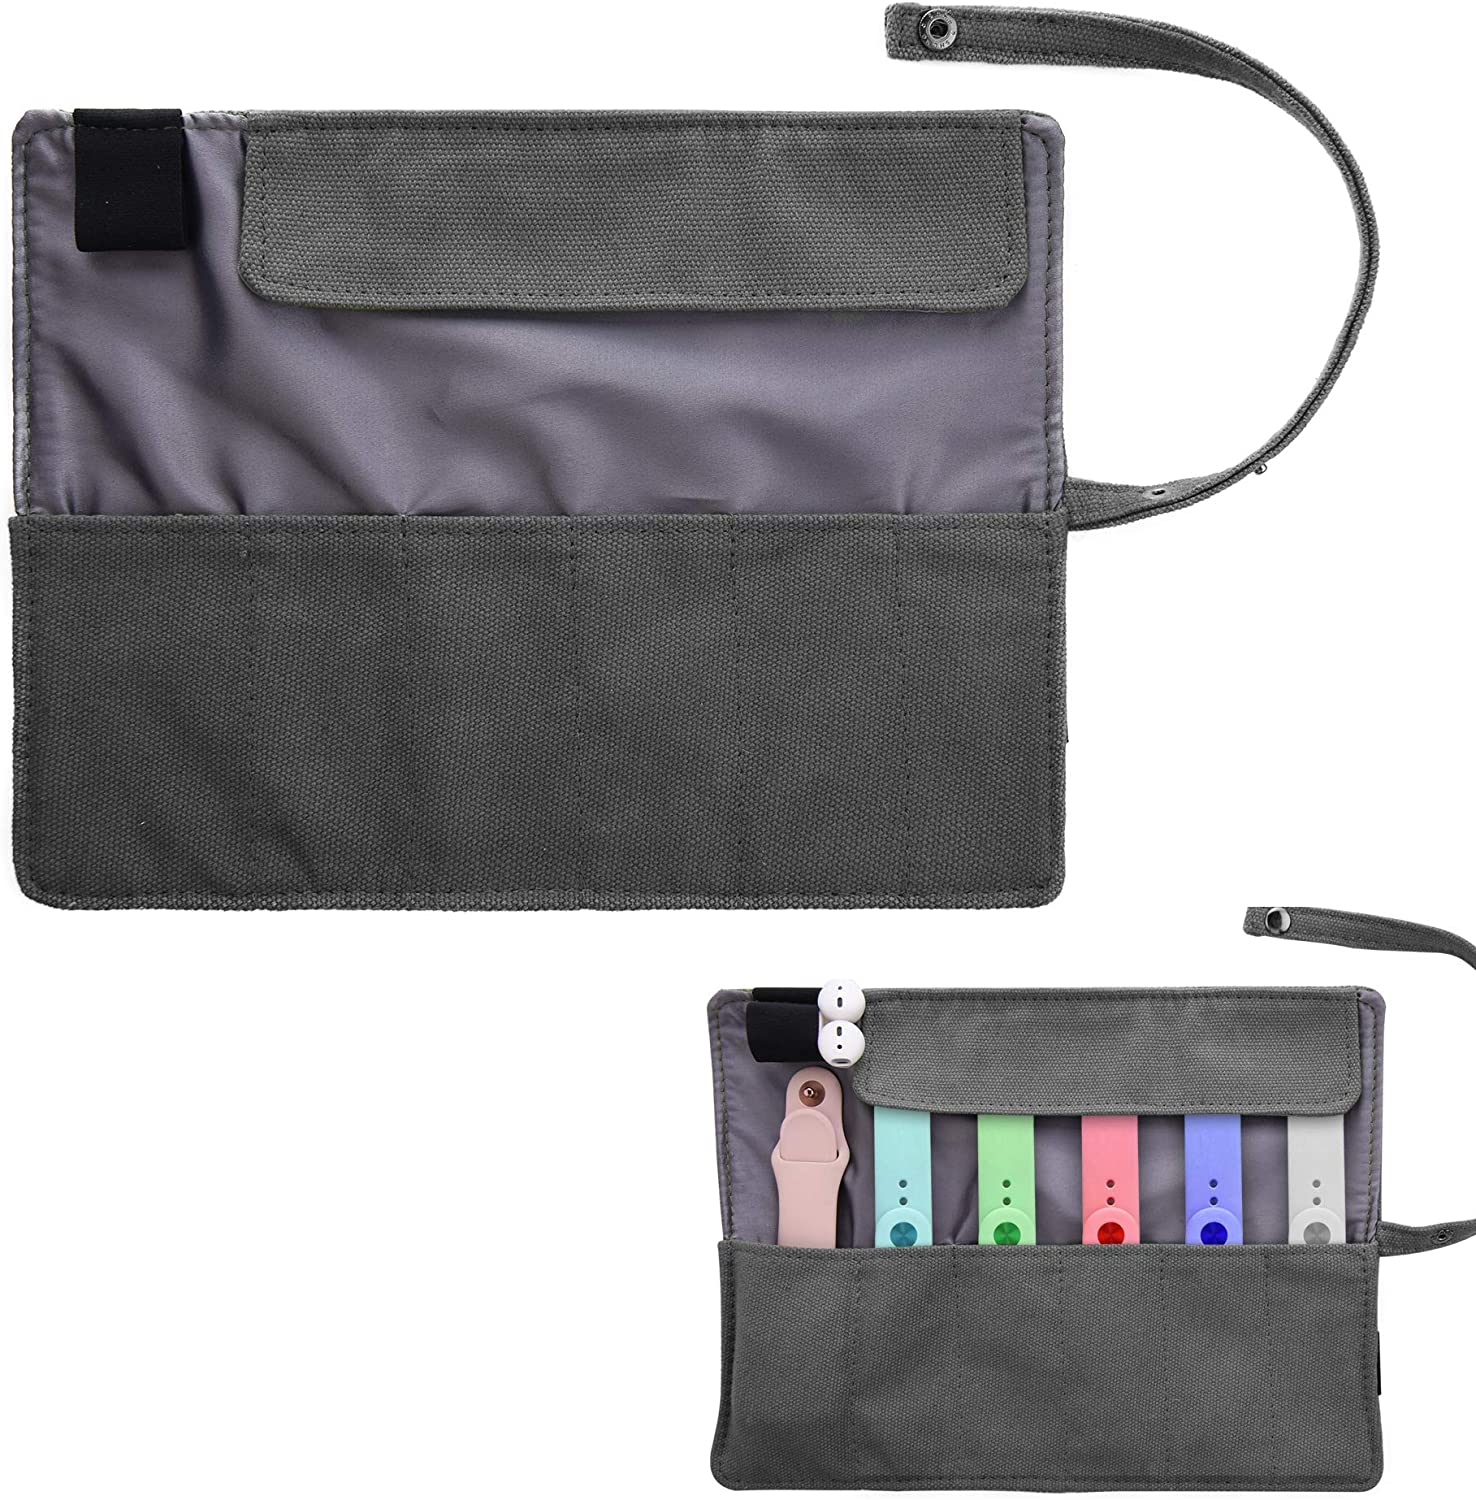 Watch Band Accessories Smartwatch Organizer Holder Pouch Protable Bag Travel Pouch Pencil Organizer Bag-Compatible with Apple Watchbands, Garmin Watch Band, Samsung Watch Band